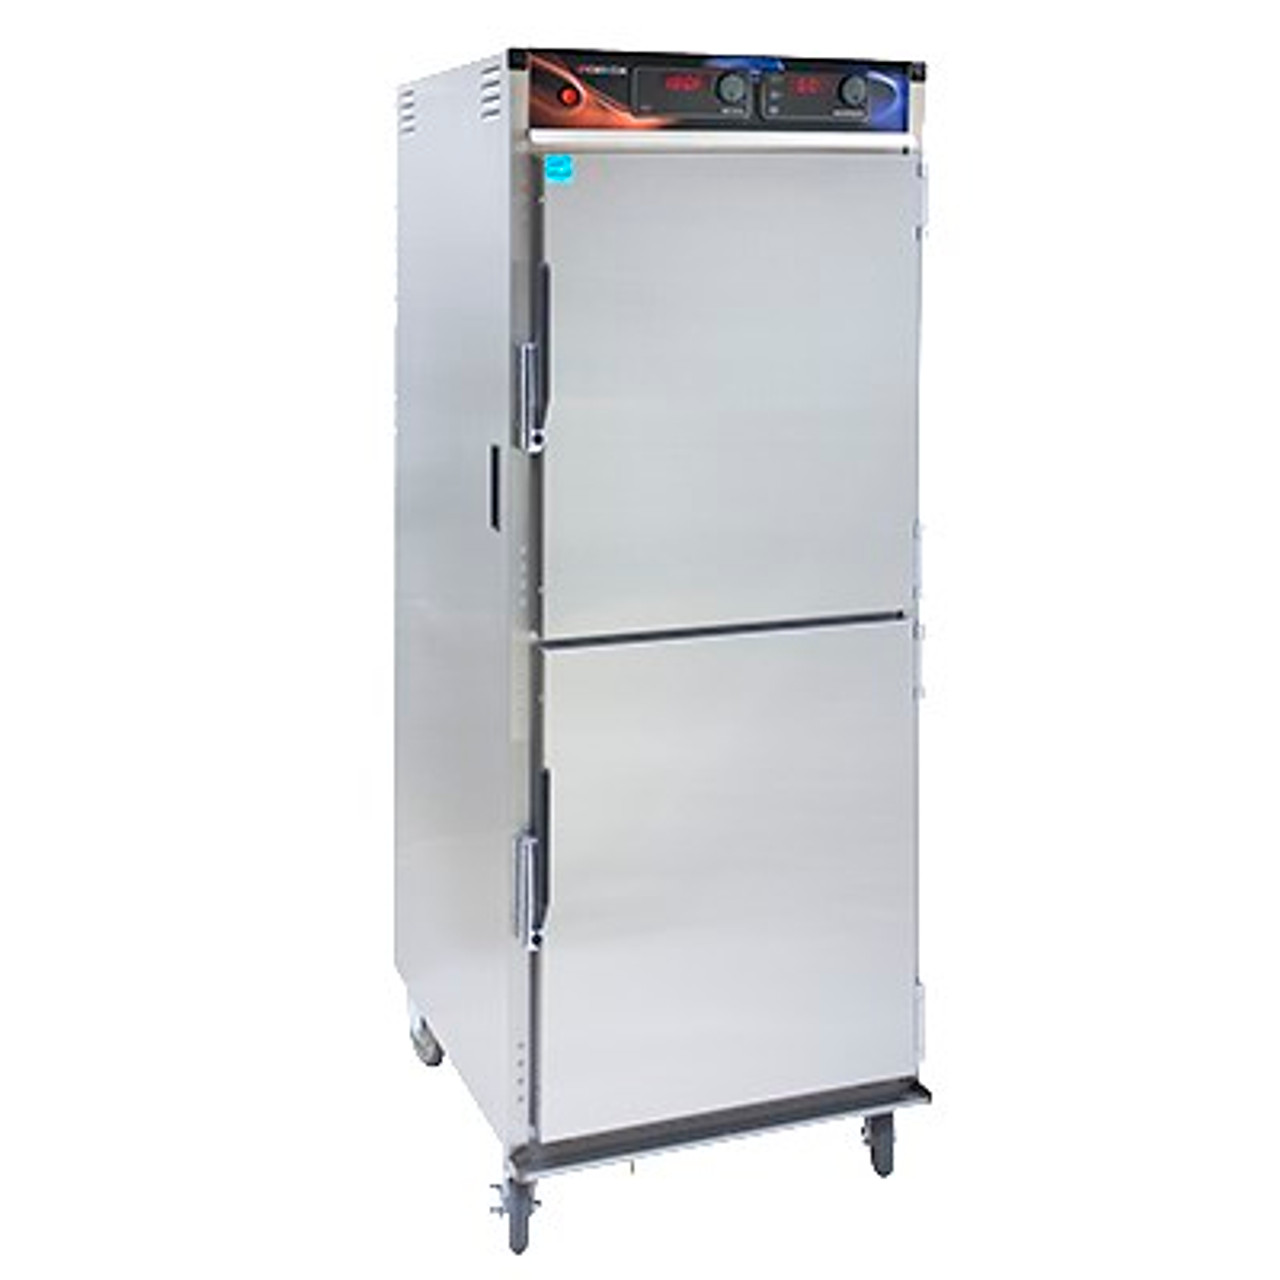 """Cabinet, Mobile Heated, with AquaTemp™ humidity cabinet, insulated, top-mount heater assembly, recessed push/pull handles, magnetic latch, (12) sets of stainless steel wire universal angle slides on 4-1/2"""" adjustable 1-1/2"""" centers, LED digital display, field reversible dutch doors, (4) heavy duty 5"""" swivel casters (2) braked, anti-microbial latches, stainless steel construction, NSF, cCSAus"""